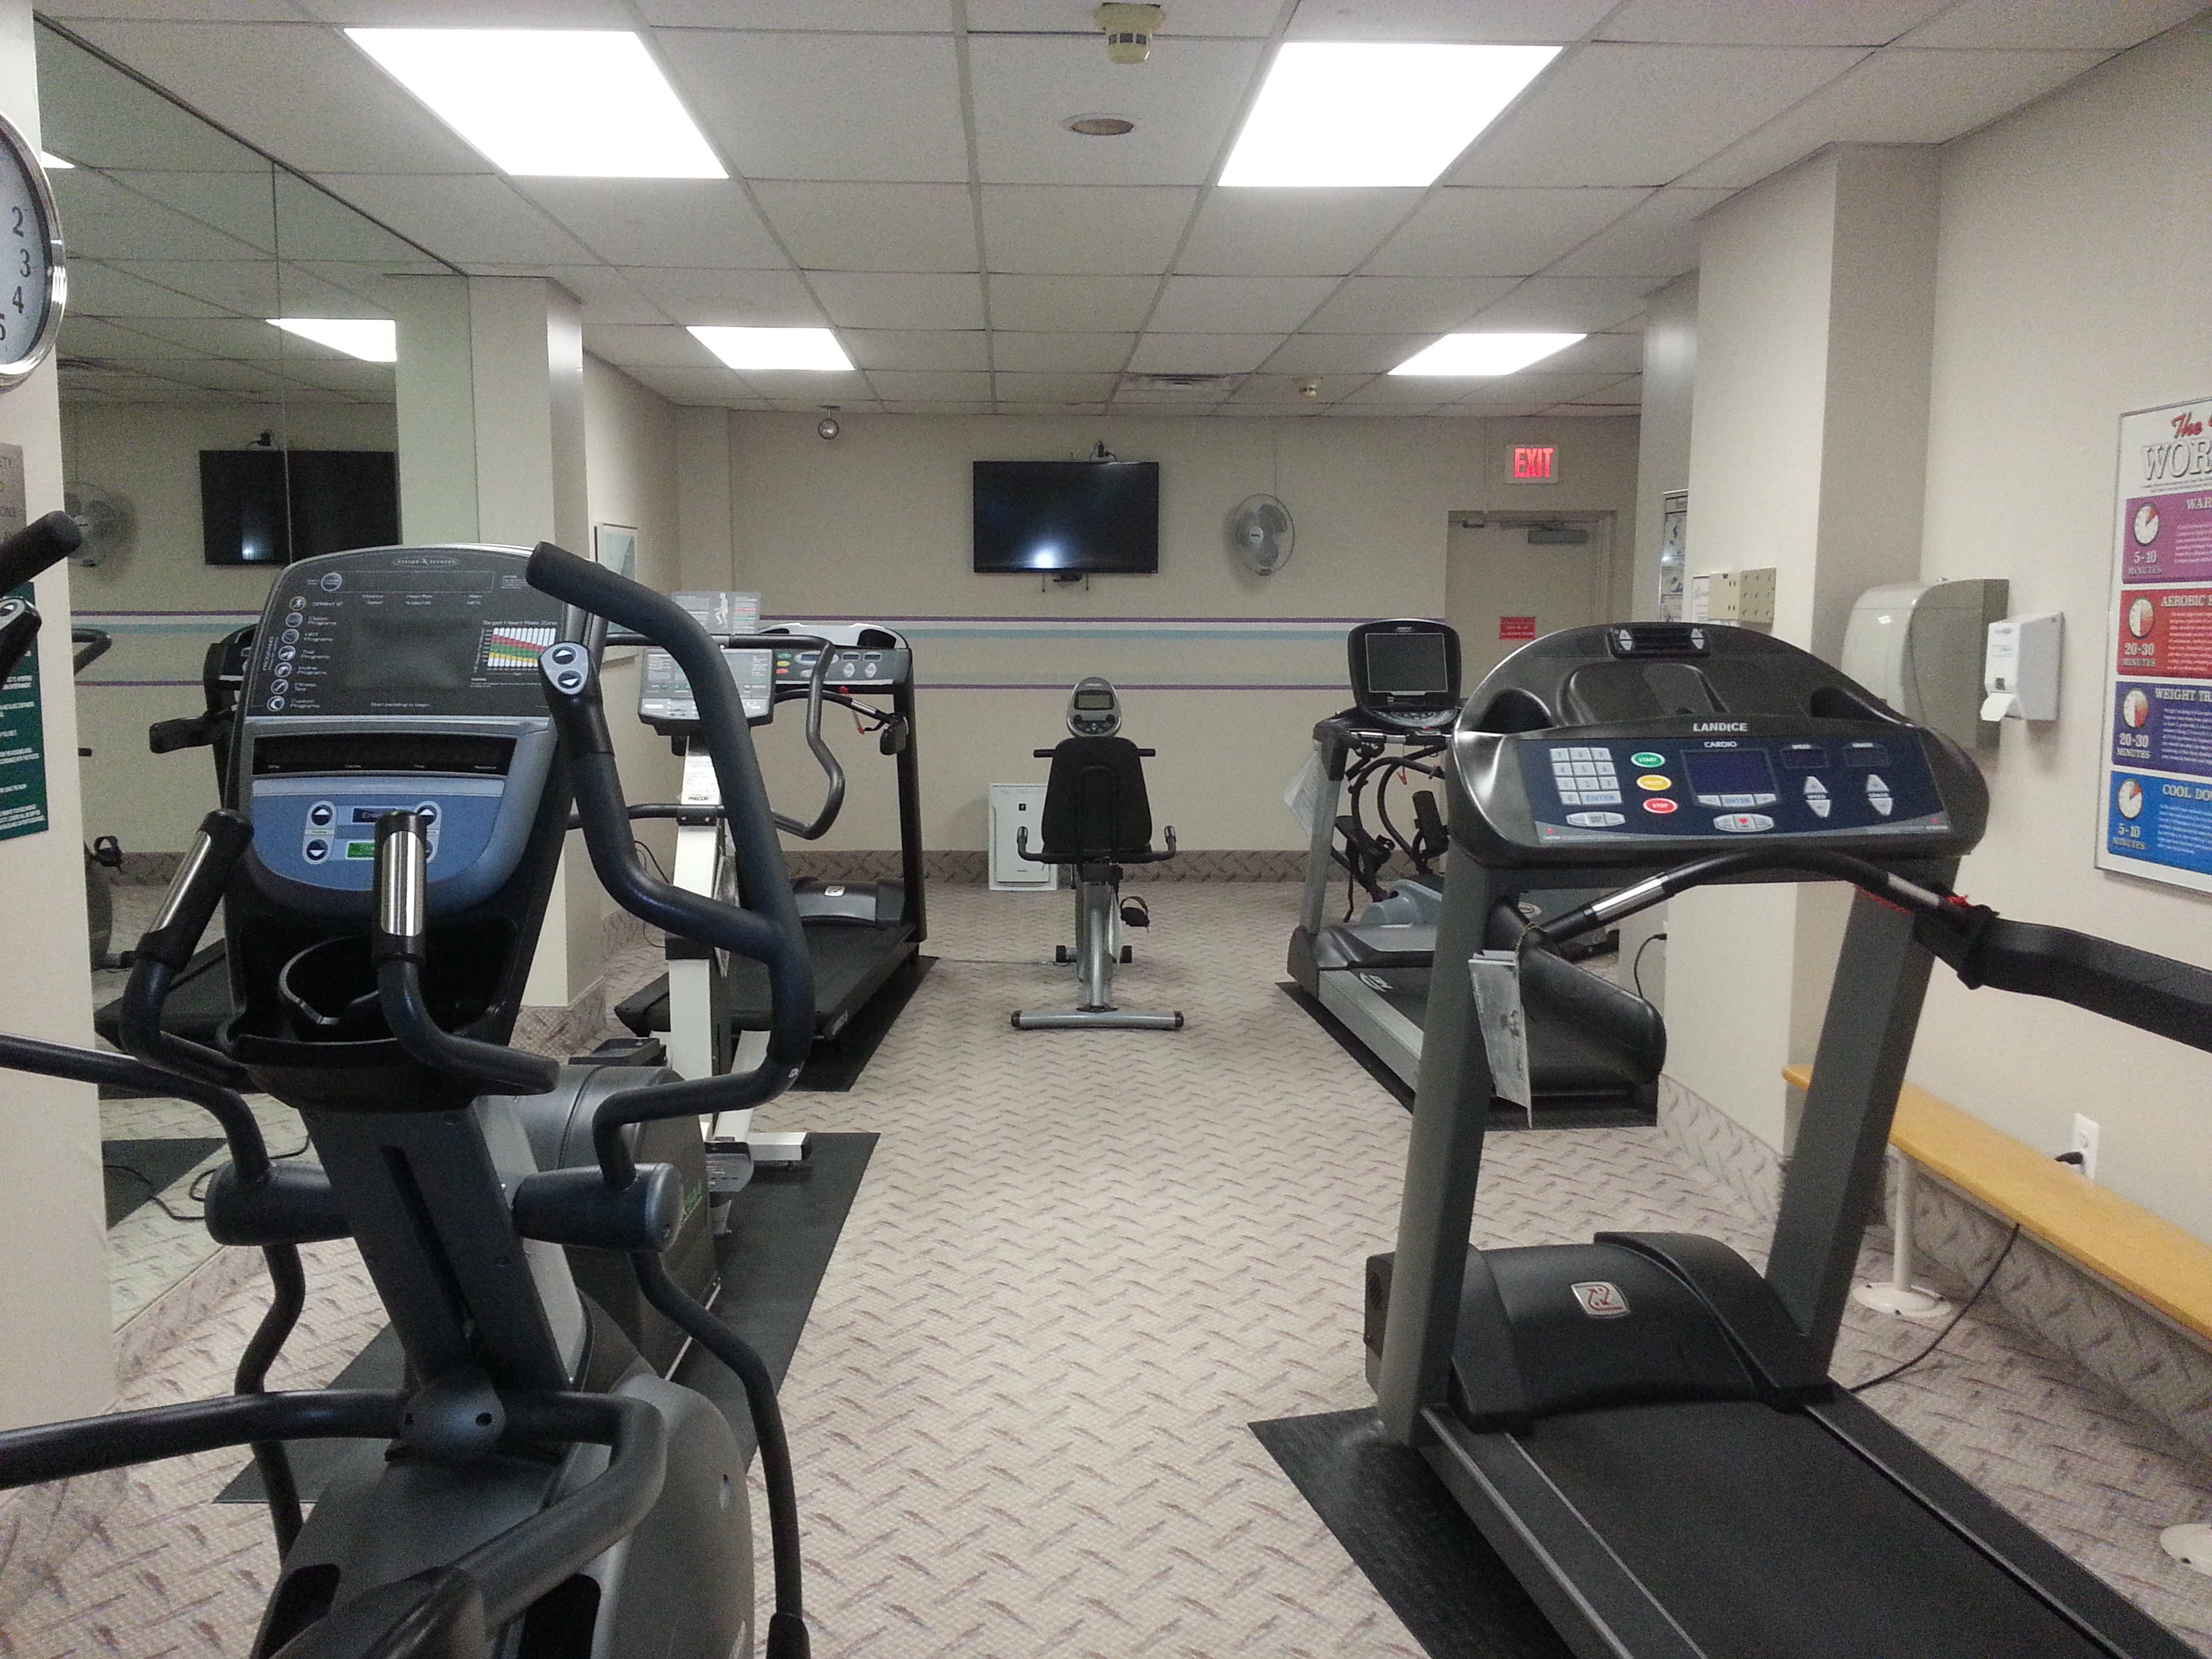 There is also a cardio room with treadmills, stationary bikes and wall mounted televisions.